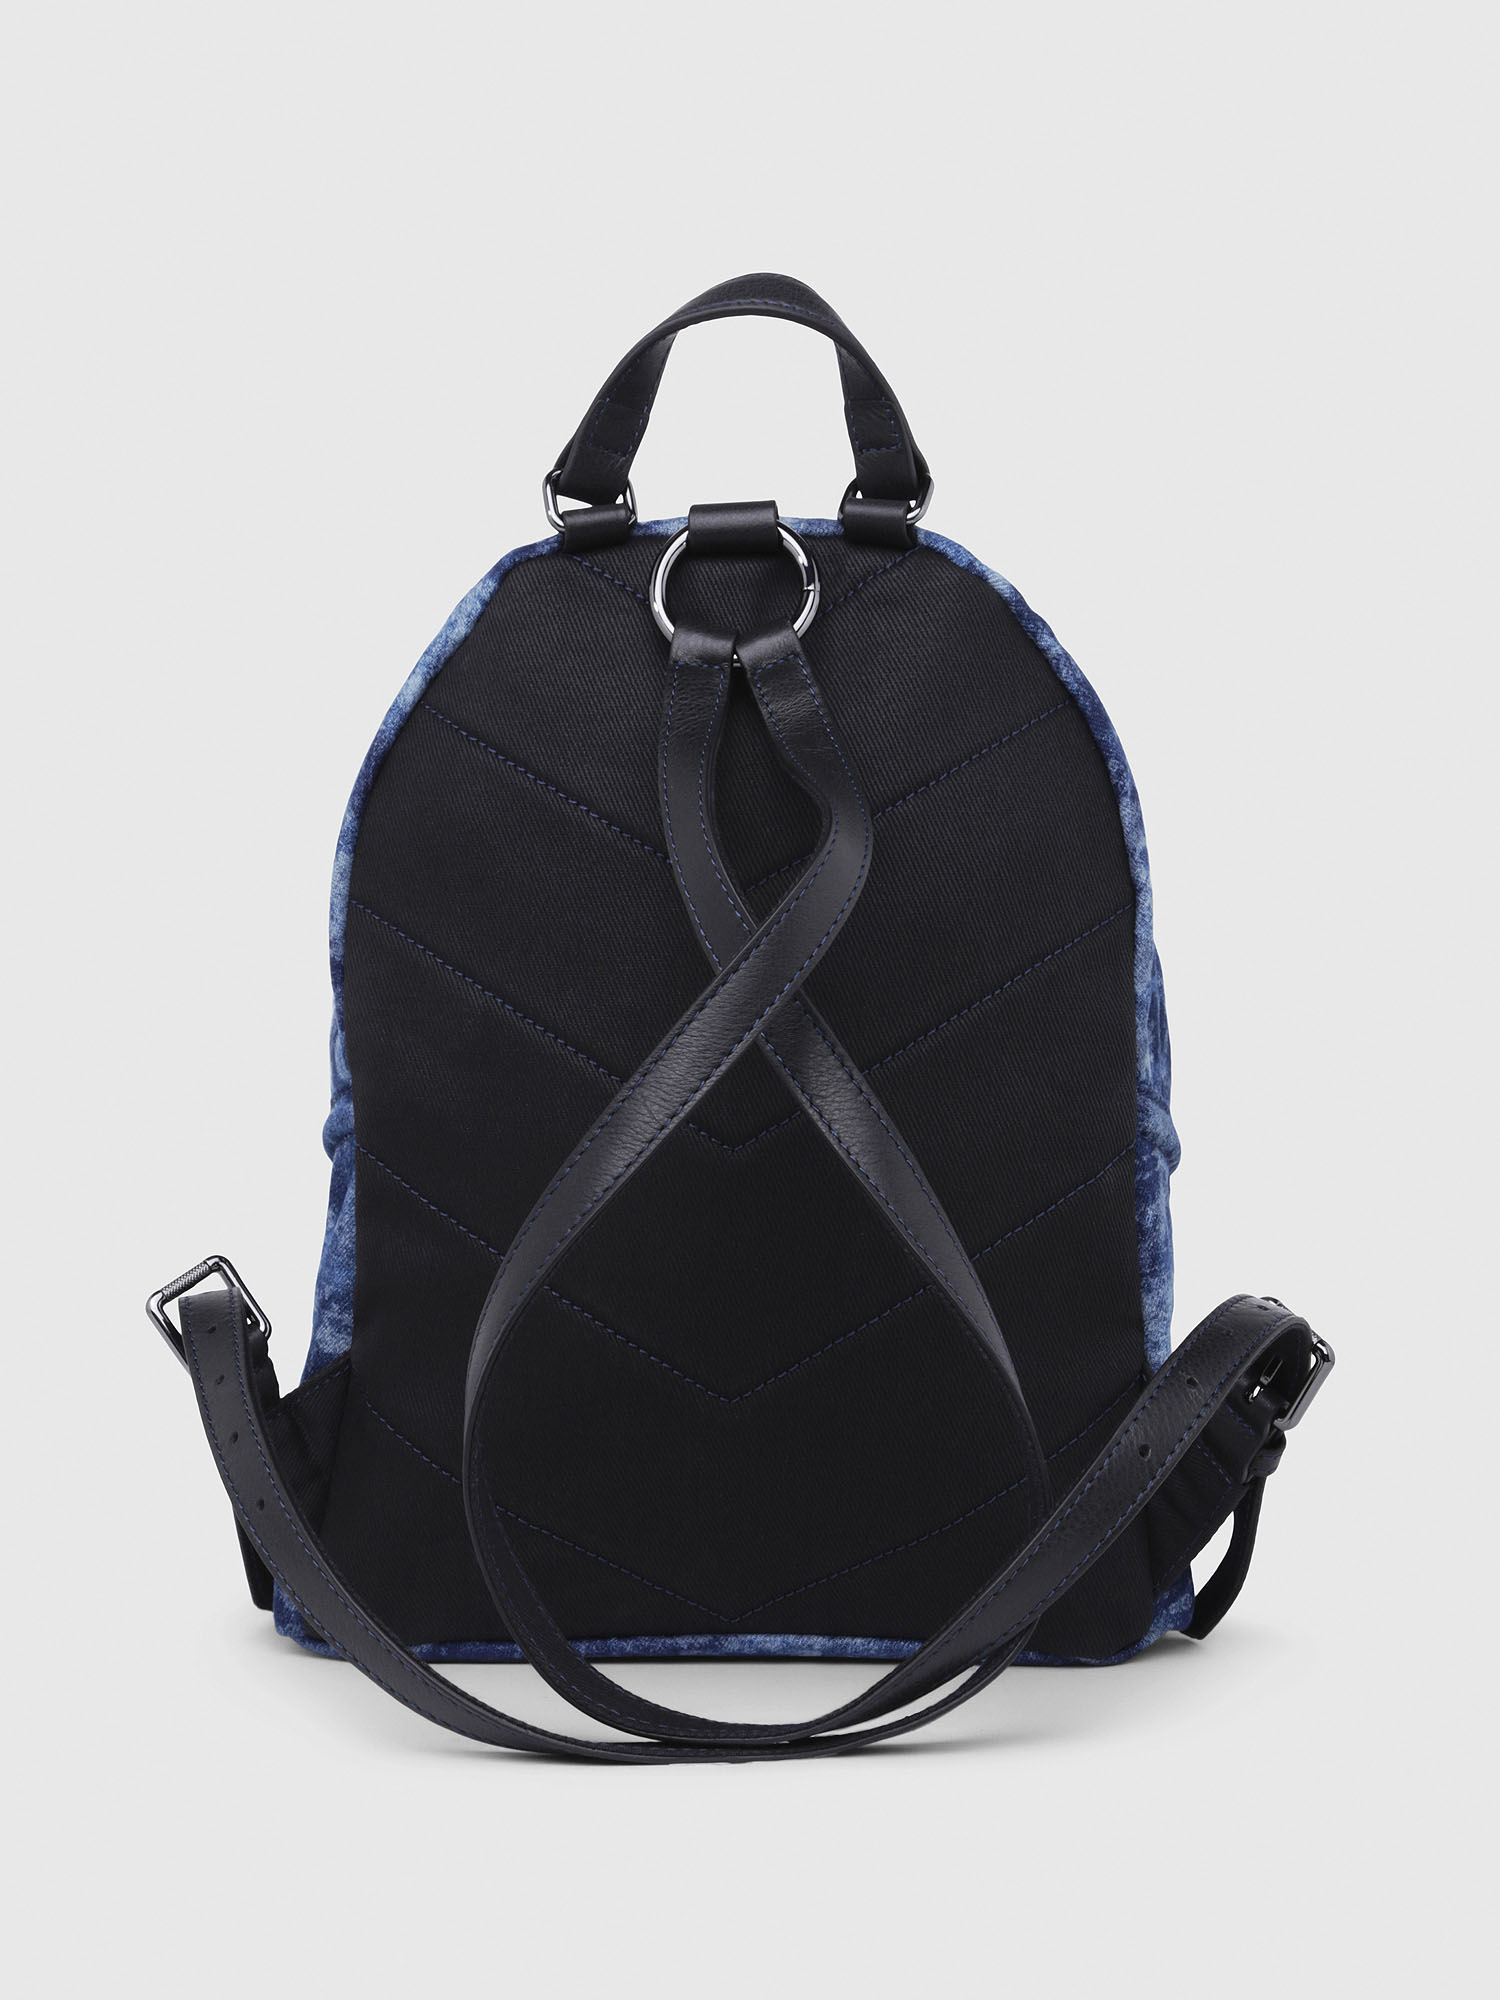 Diesel - LE-ZIPPER BACKPACK,  - Backpacks - Image 2